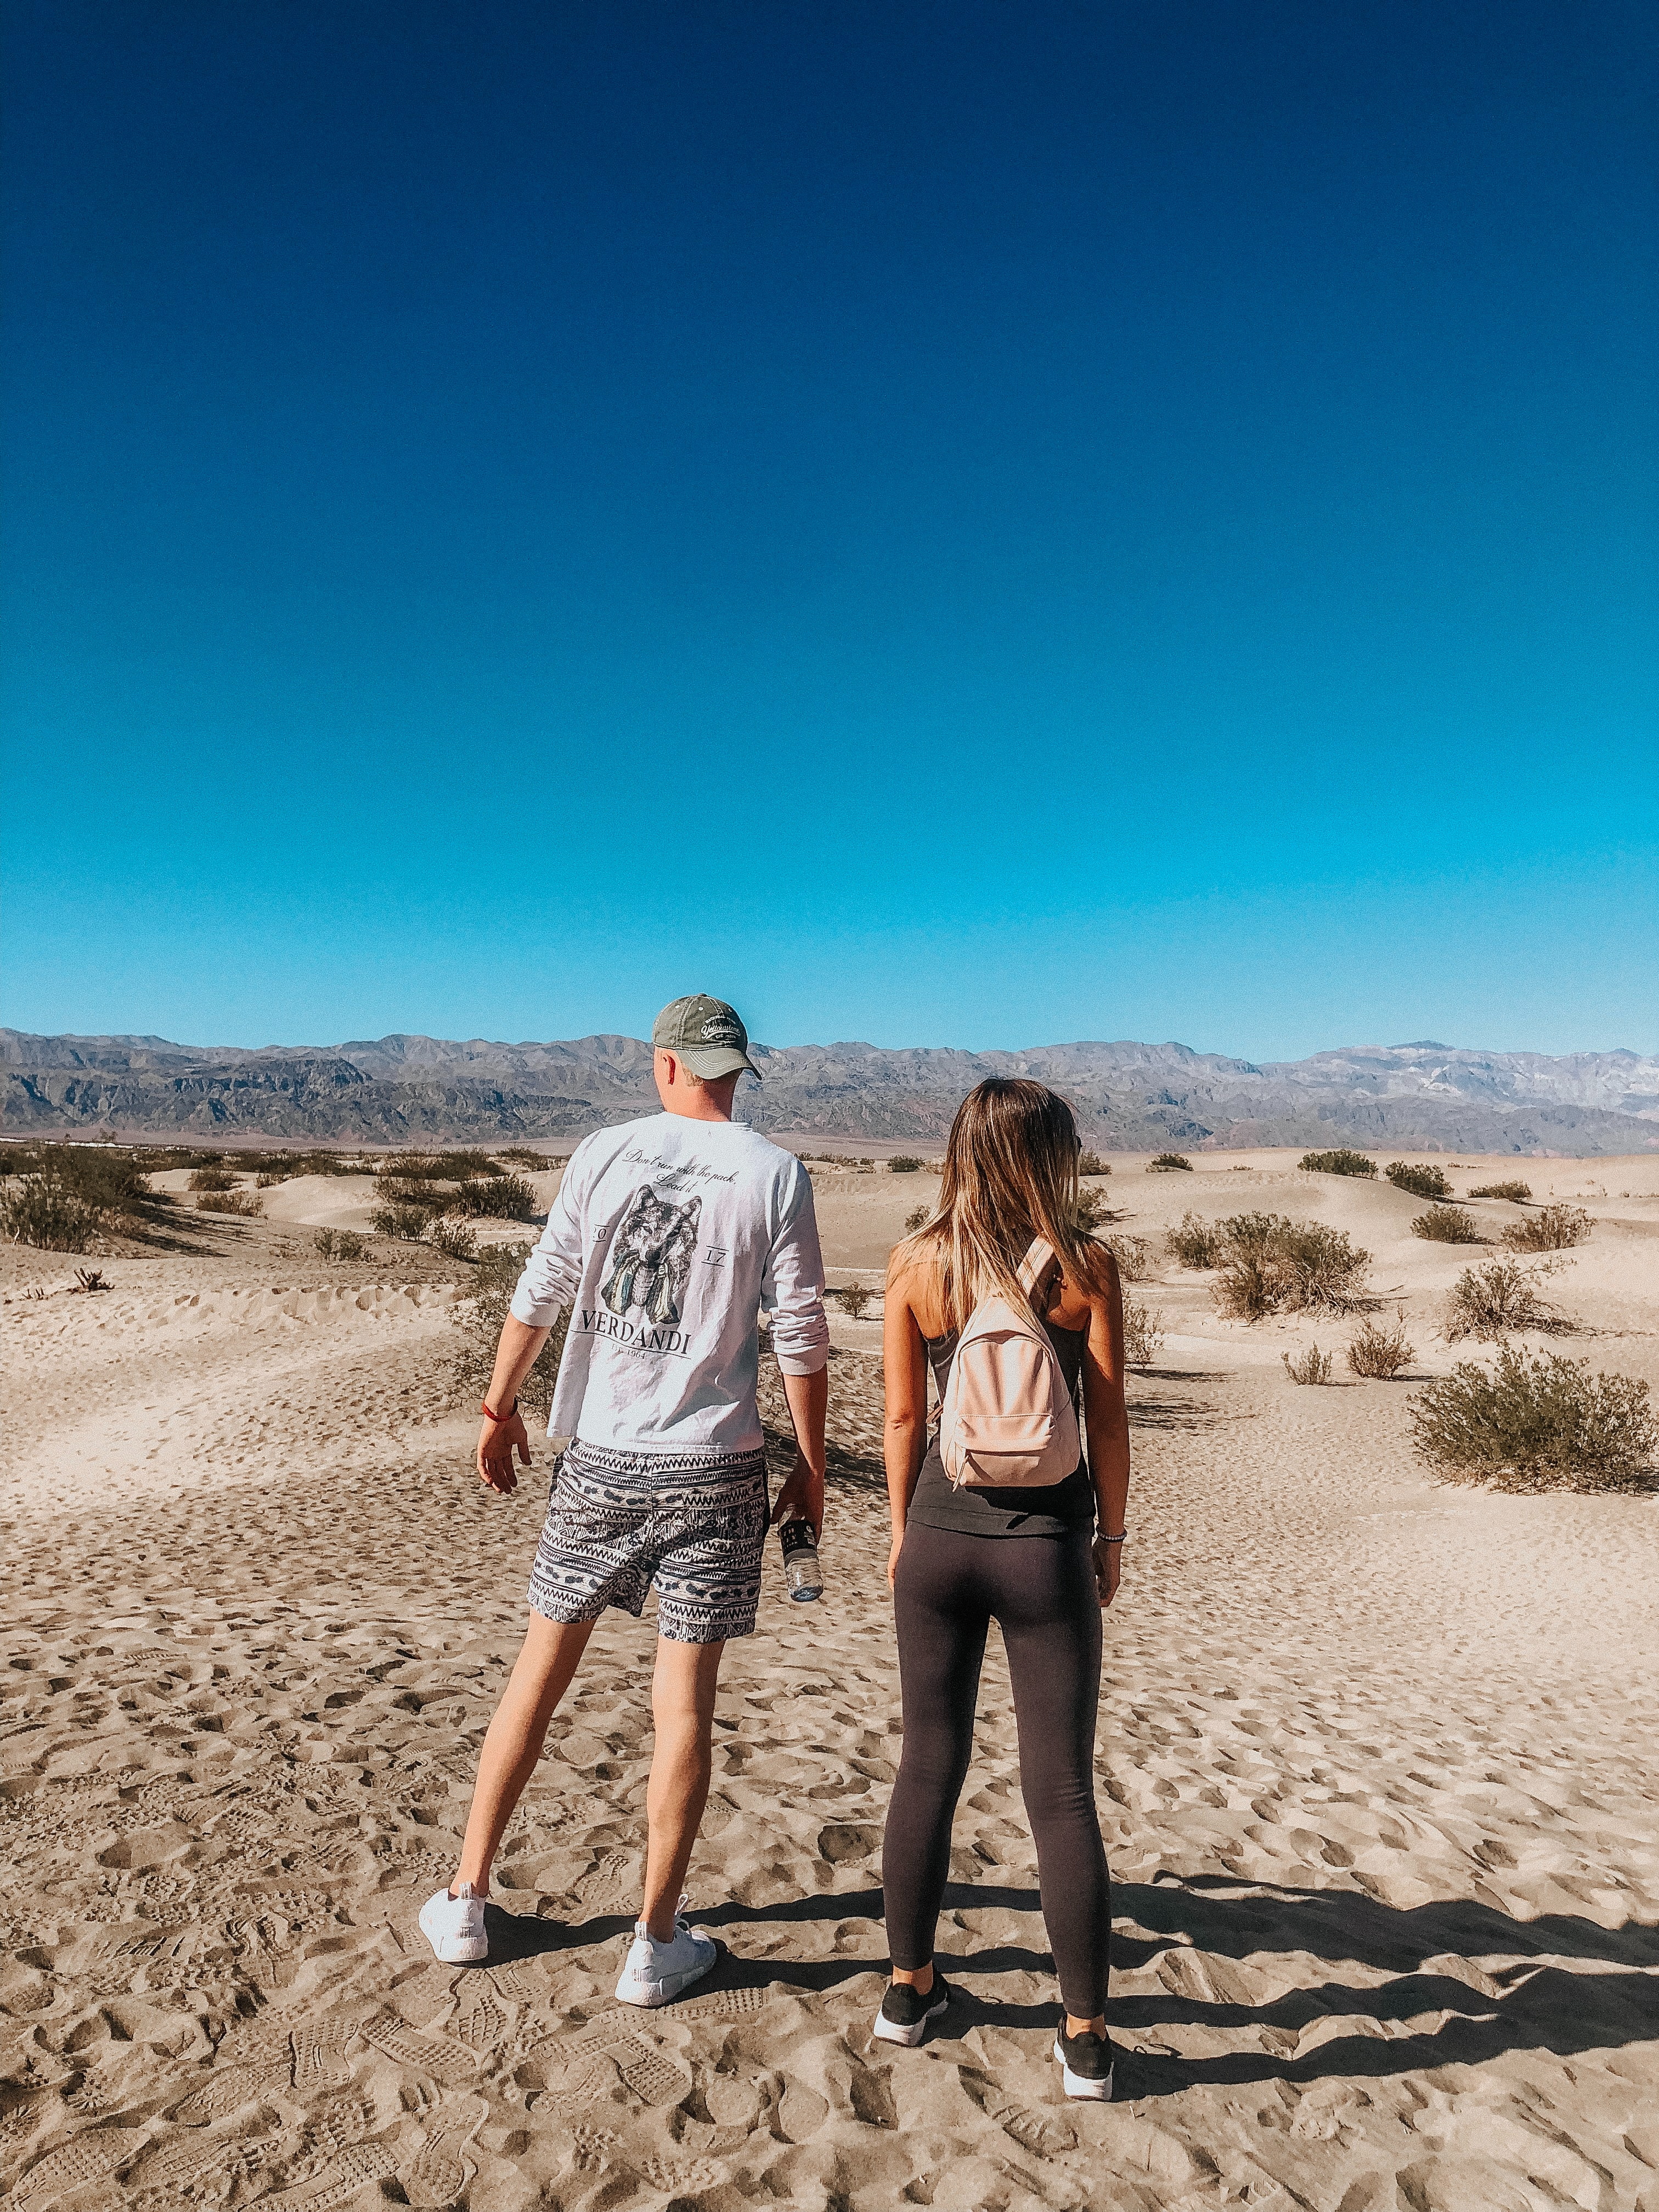 Hikers on a sandy landscape evaluate the way ahead.